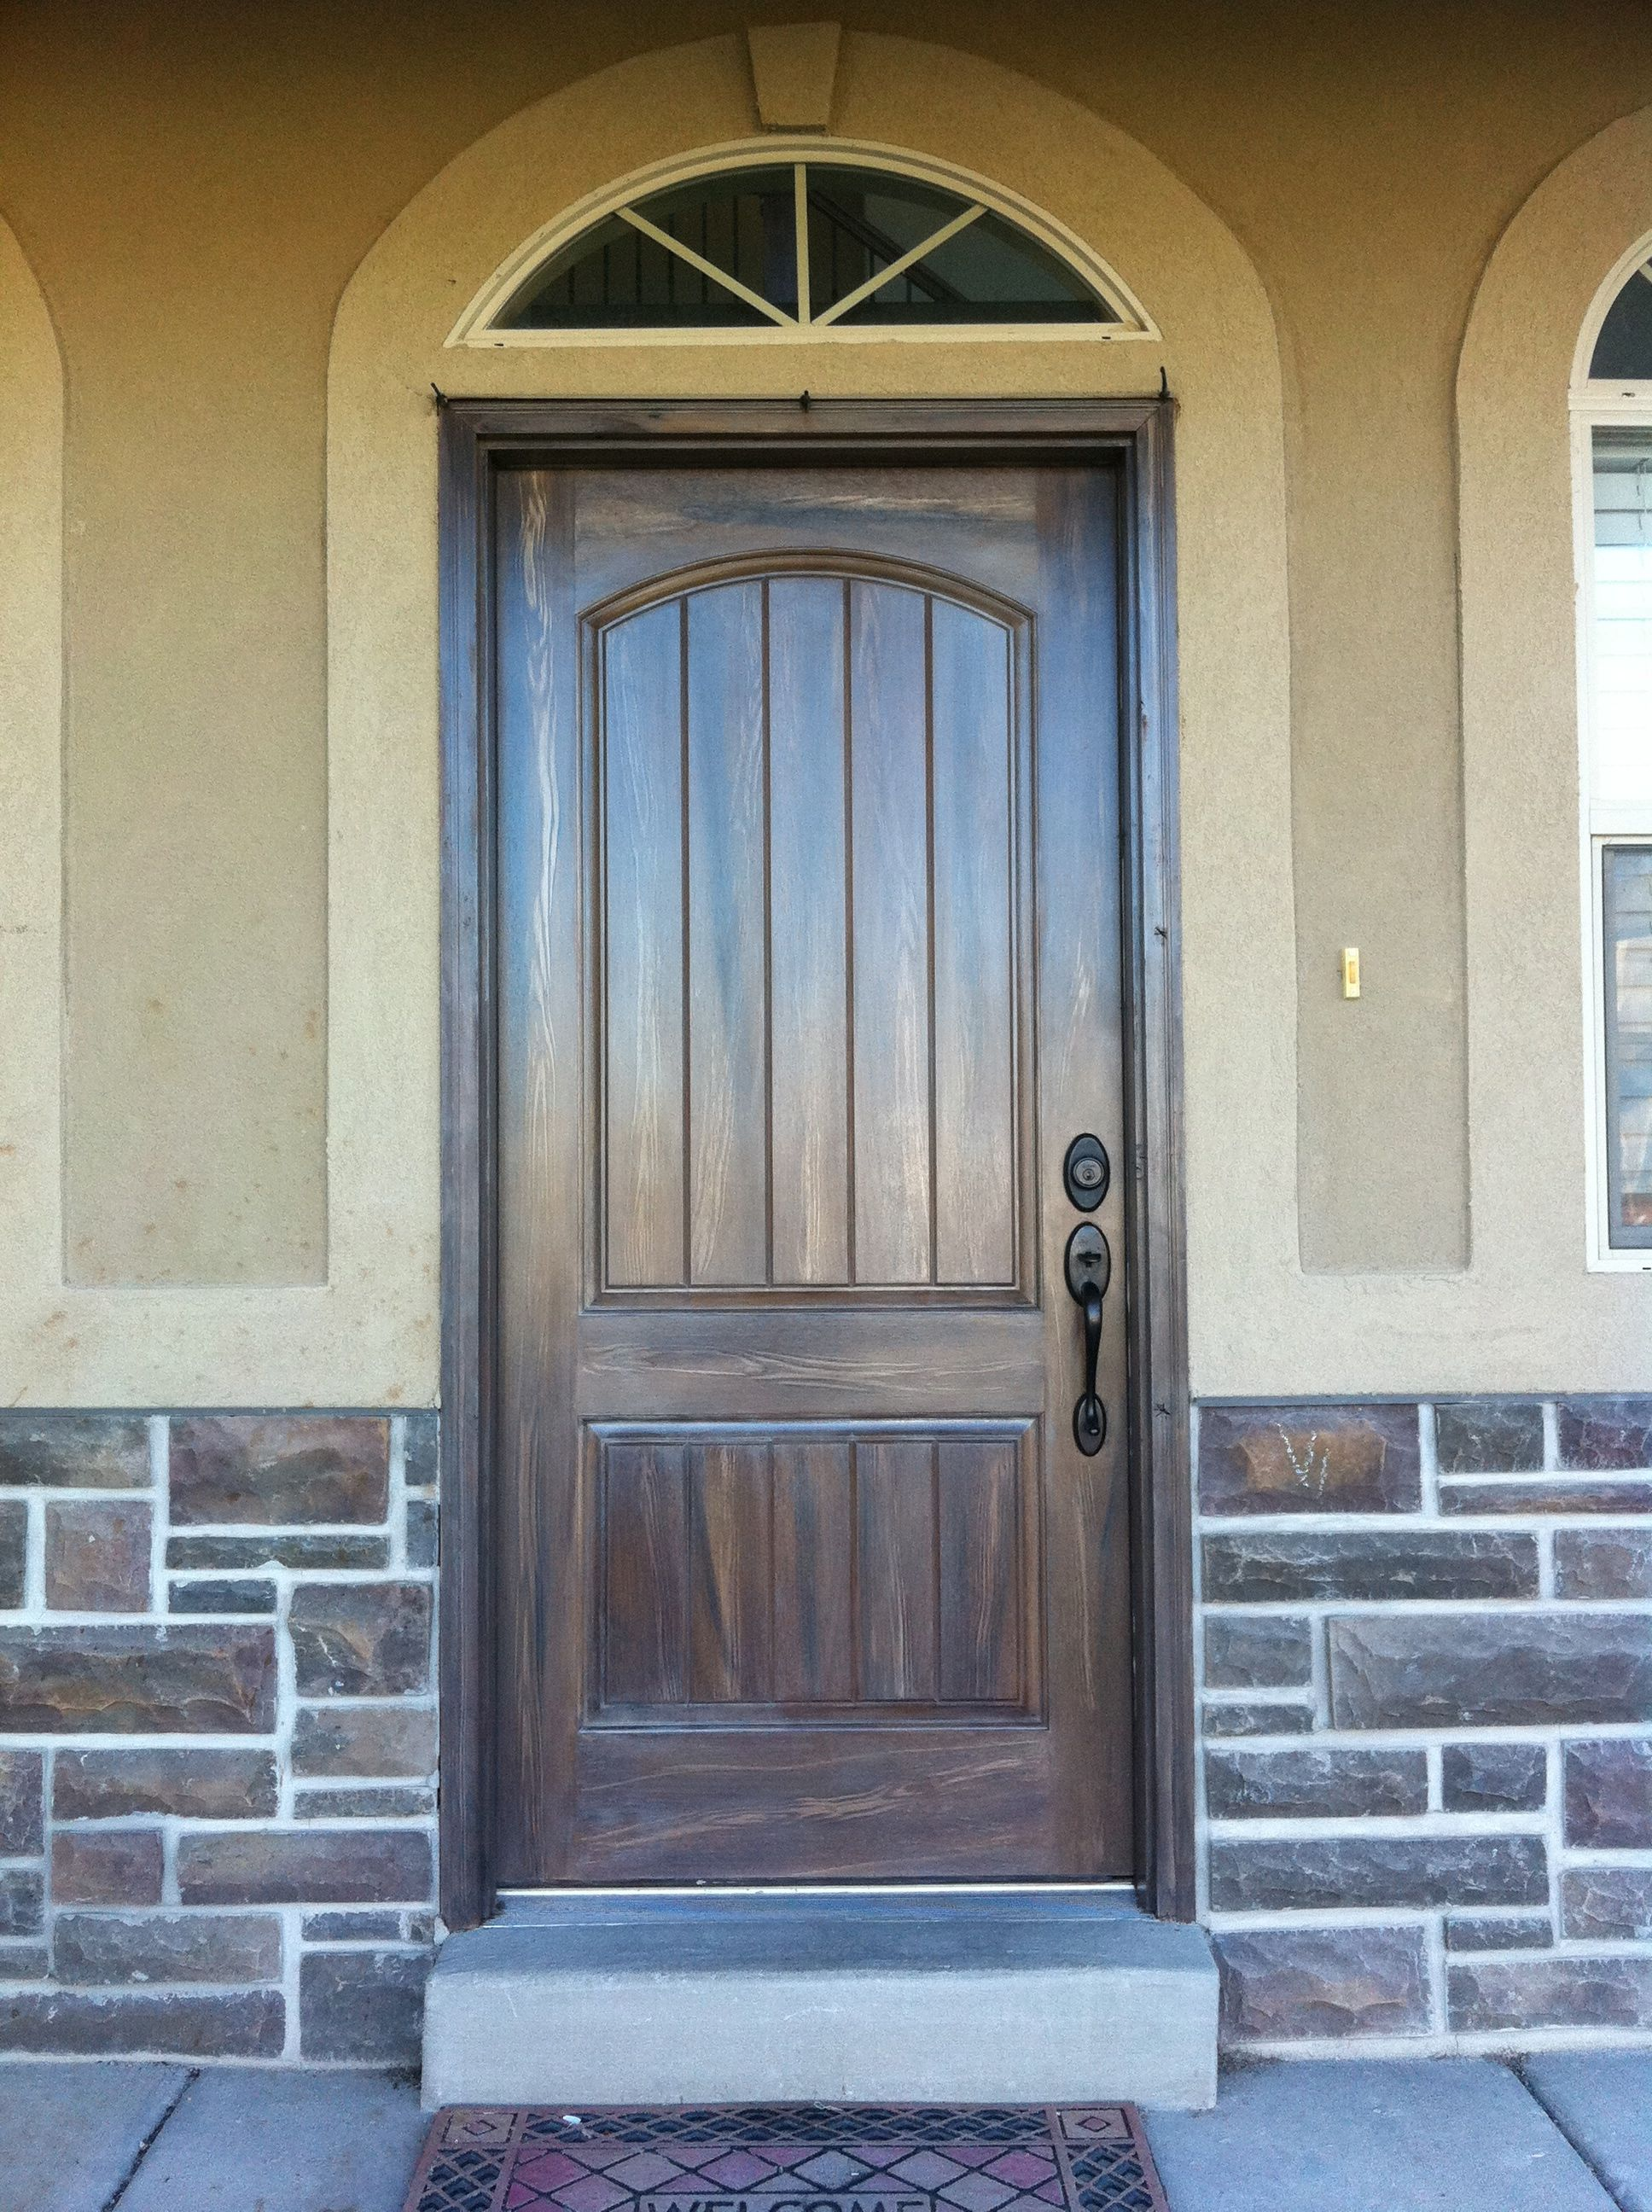 Exterior fibergl doors that have been wood grained or faux ... on best exterior wood wall, best teak stain, best exterior wood preservative, deck stain, best white stain, best exterior tape, best exterior caulk, white exterior stain, best exterior wood furniture, best exterior paint, best solid wood stain, best exterior sealer, best exterior white, best fence stain, best cedar stain, best exterior wood doors, best exterior varnish, best exterior primer, best concrete stain, best paint stain,